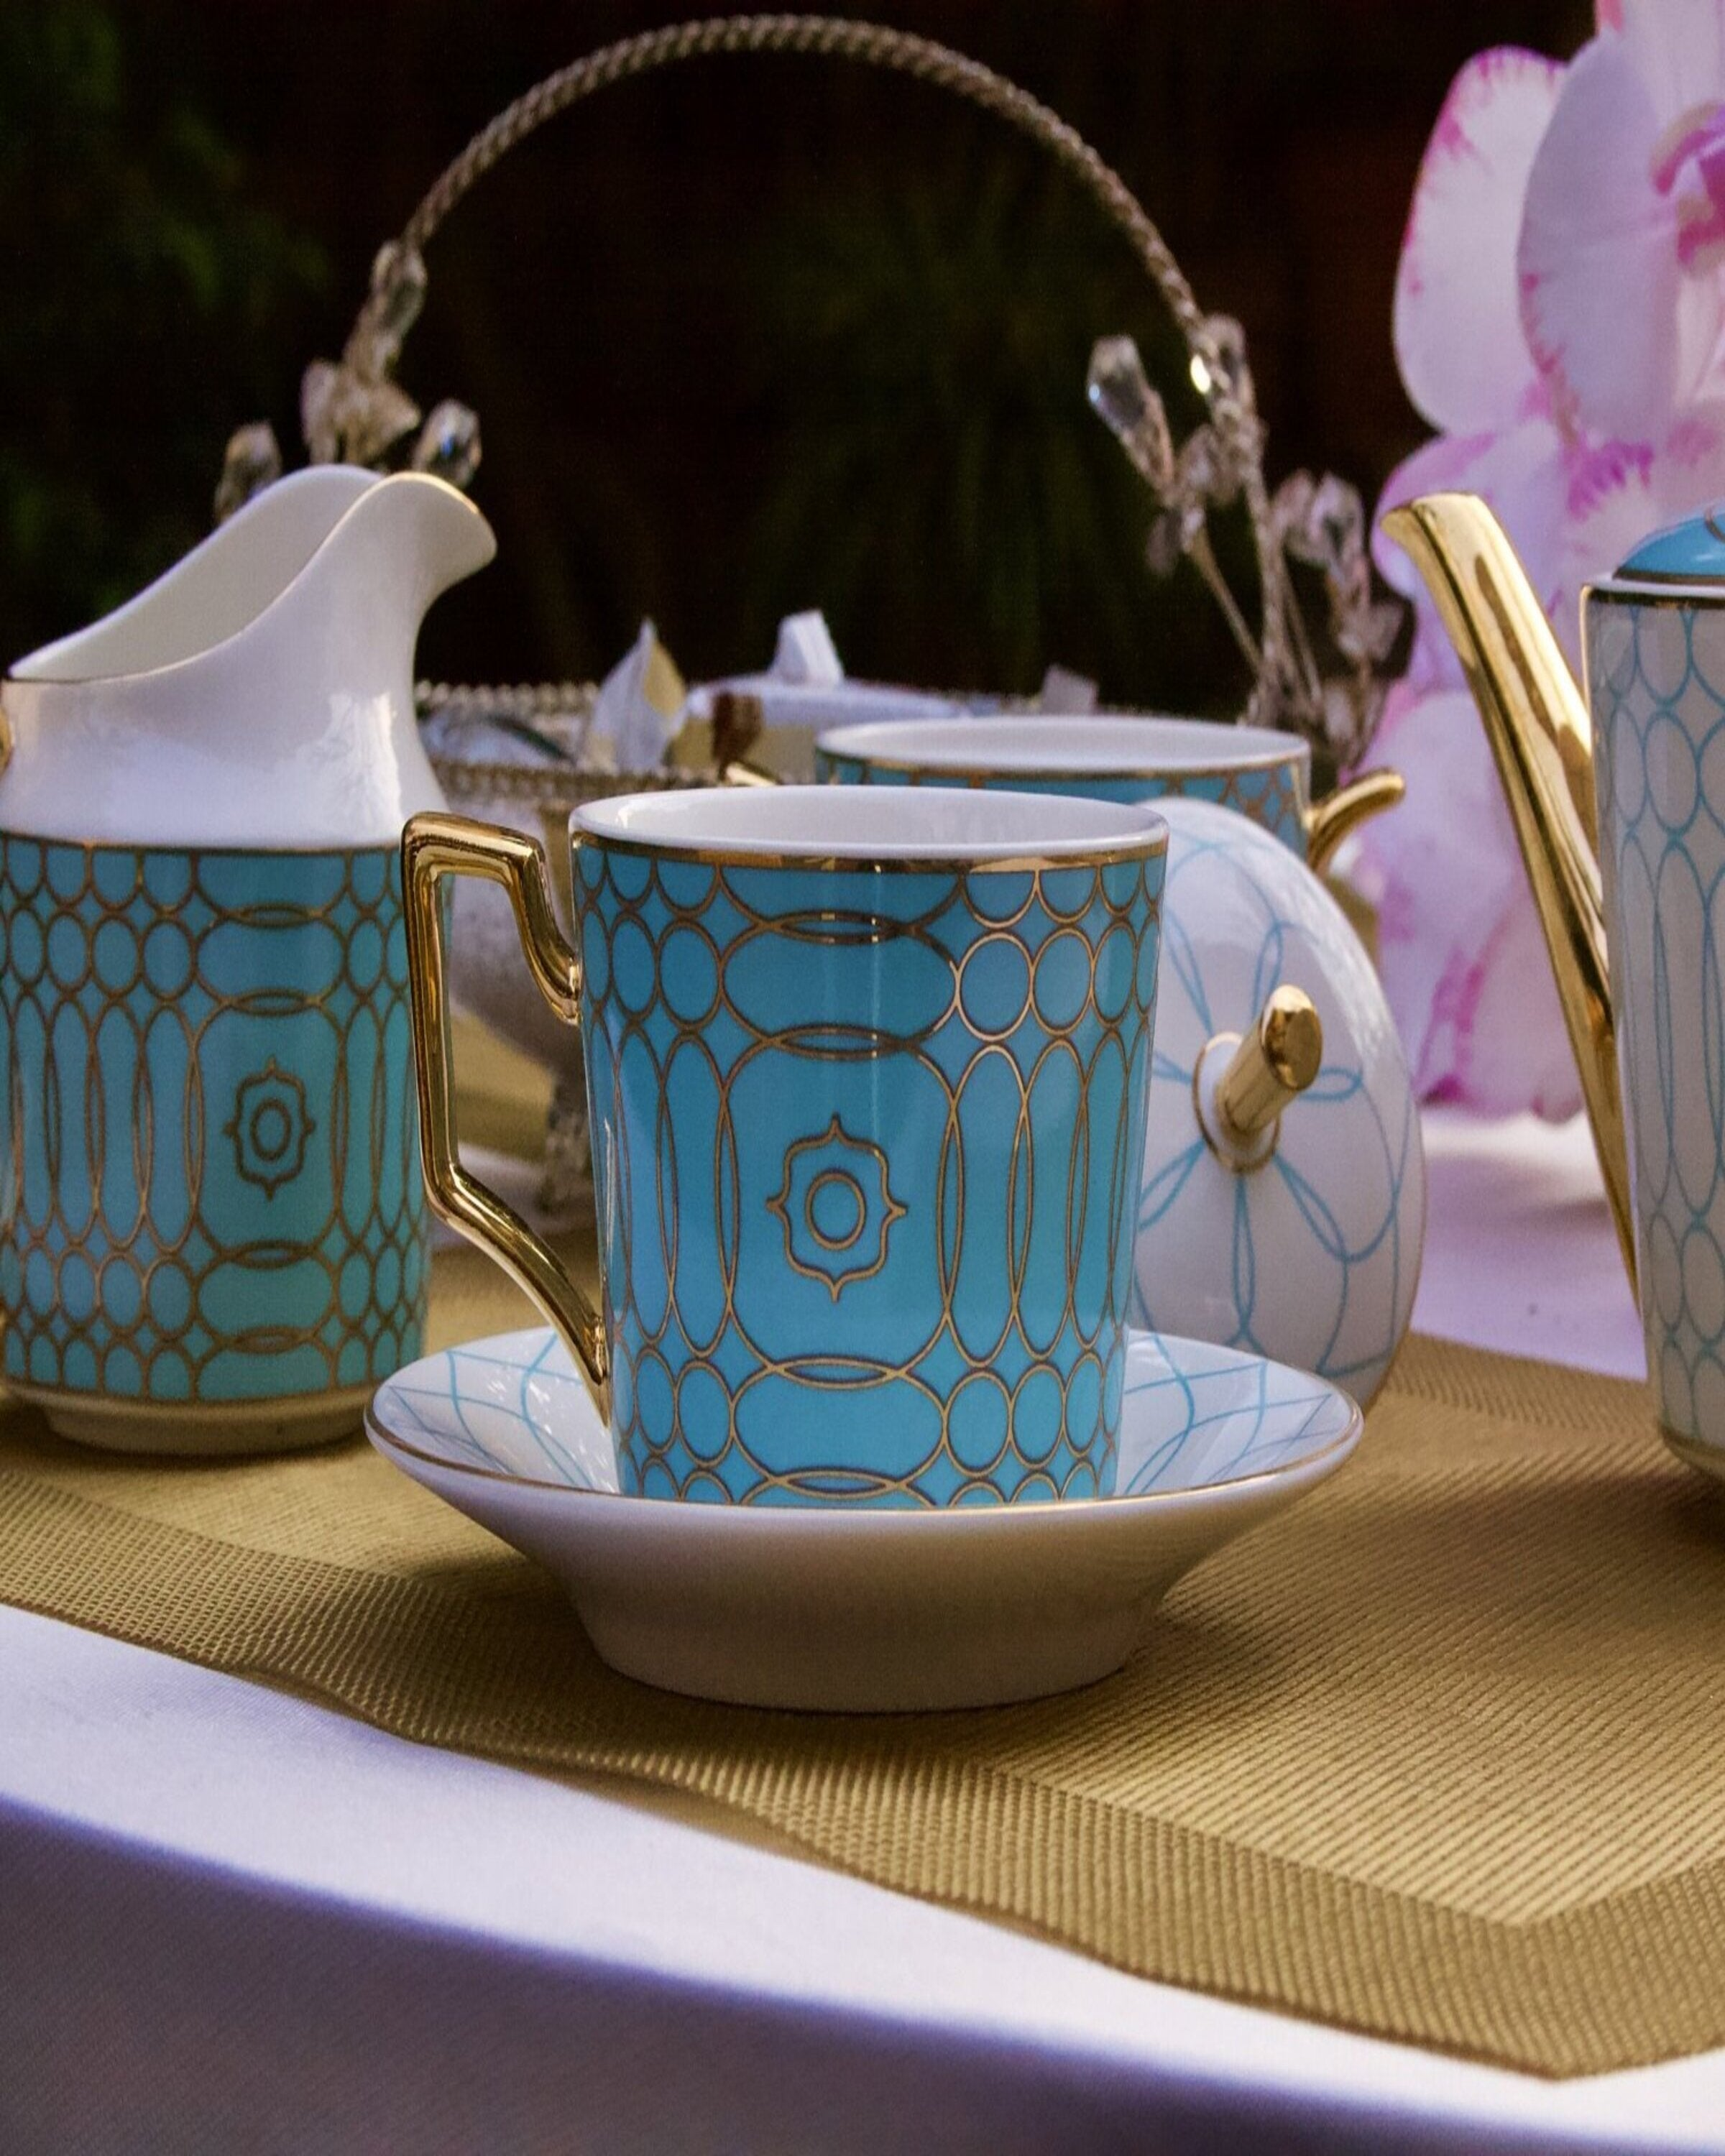 MALACITE TEA SET ANGIE HOMES